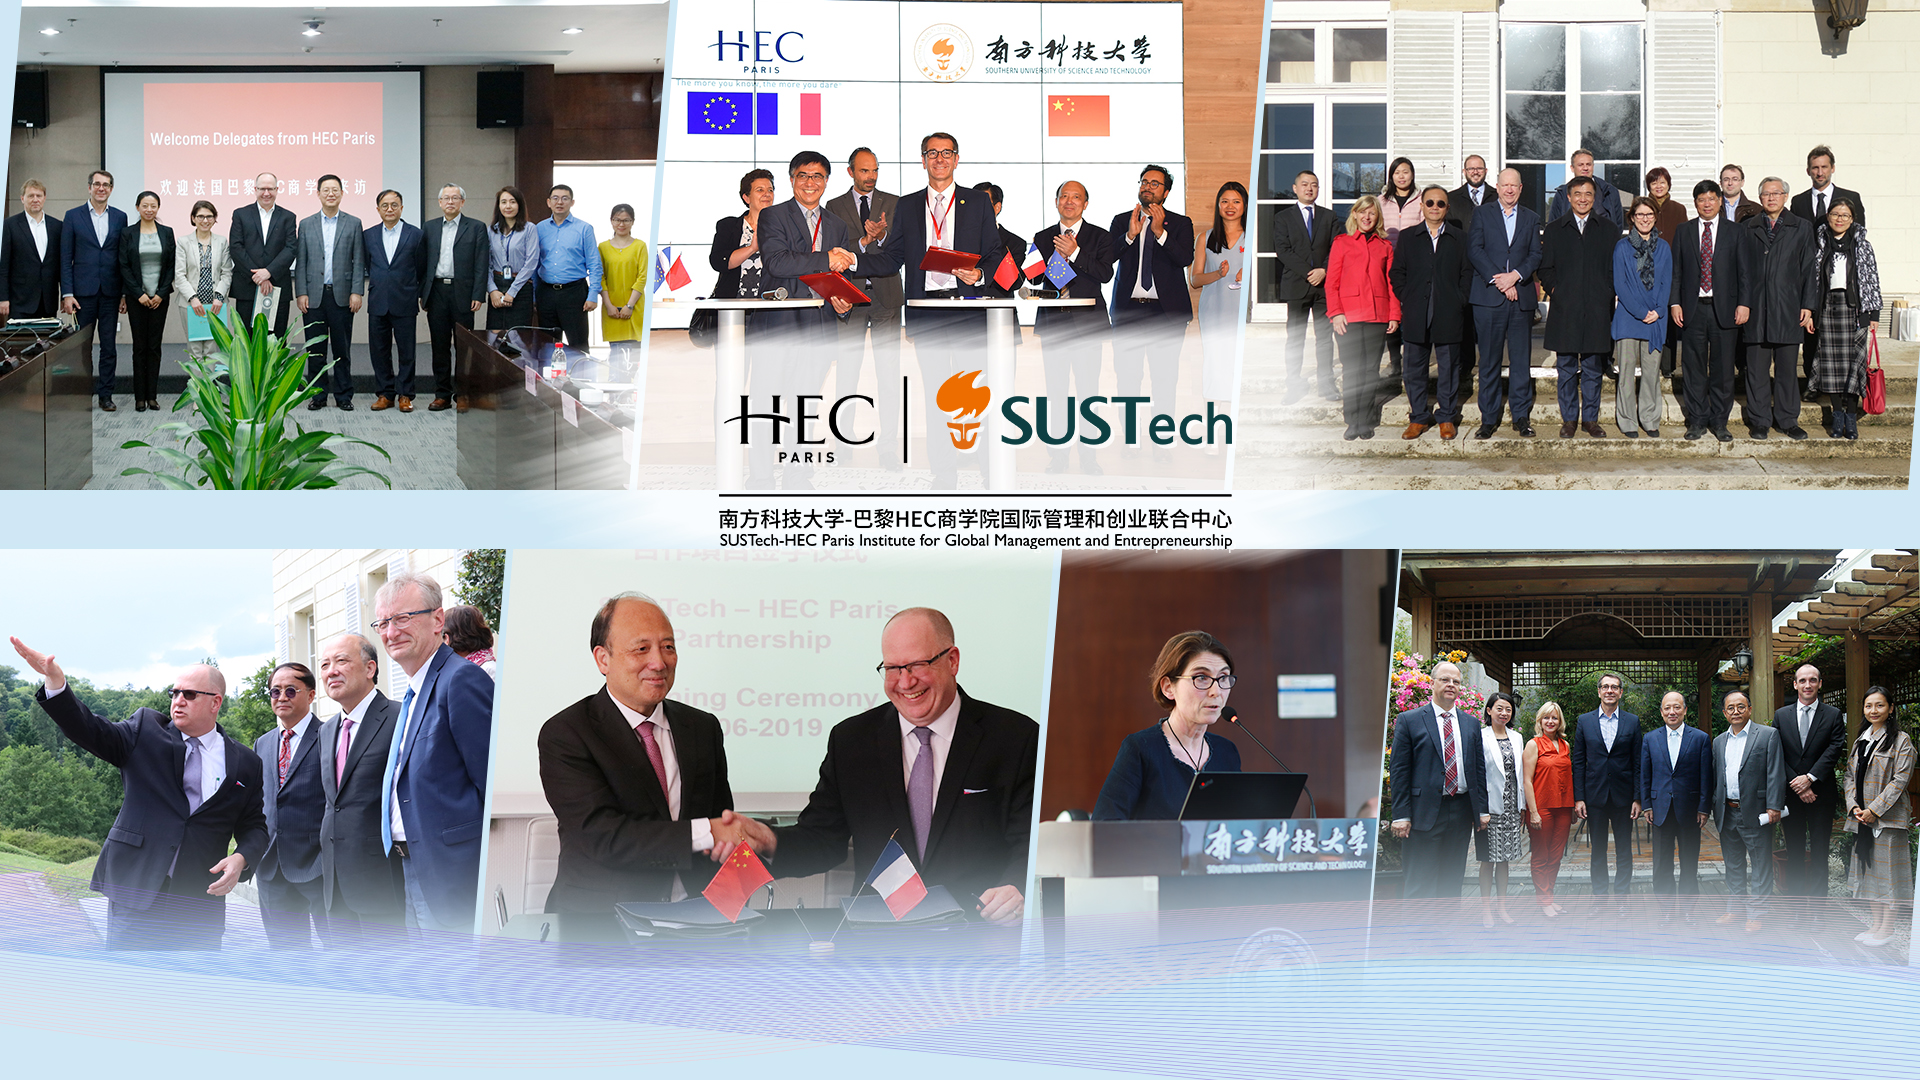 SUSTech, HEC Paris establish Joint Institute for Global Management and Entrepreneurship